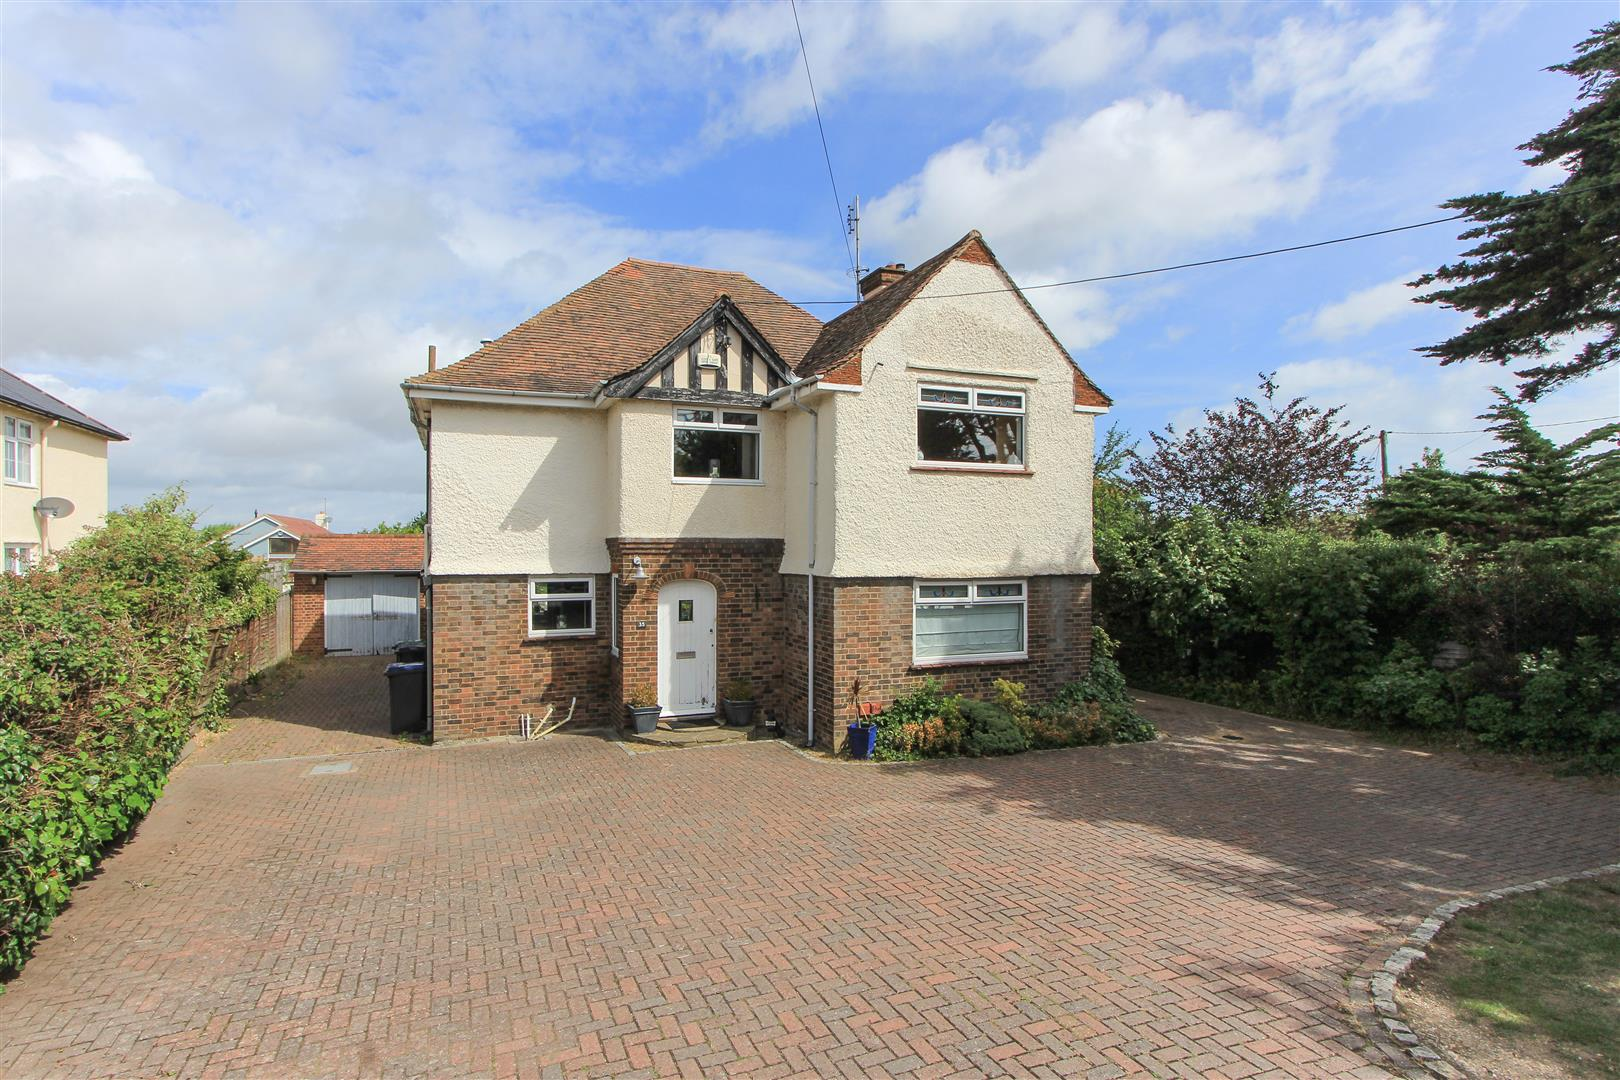 5 Bedrooms Detached House for sale in Joy Lane, Whitstable